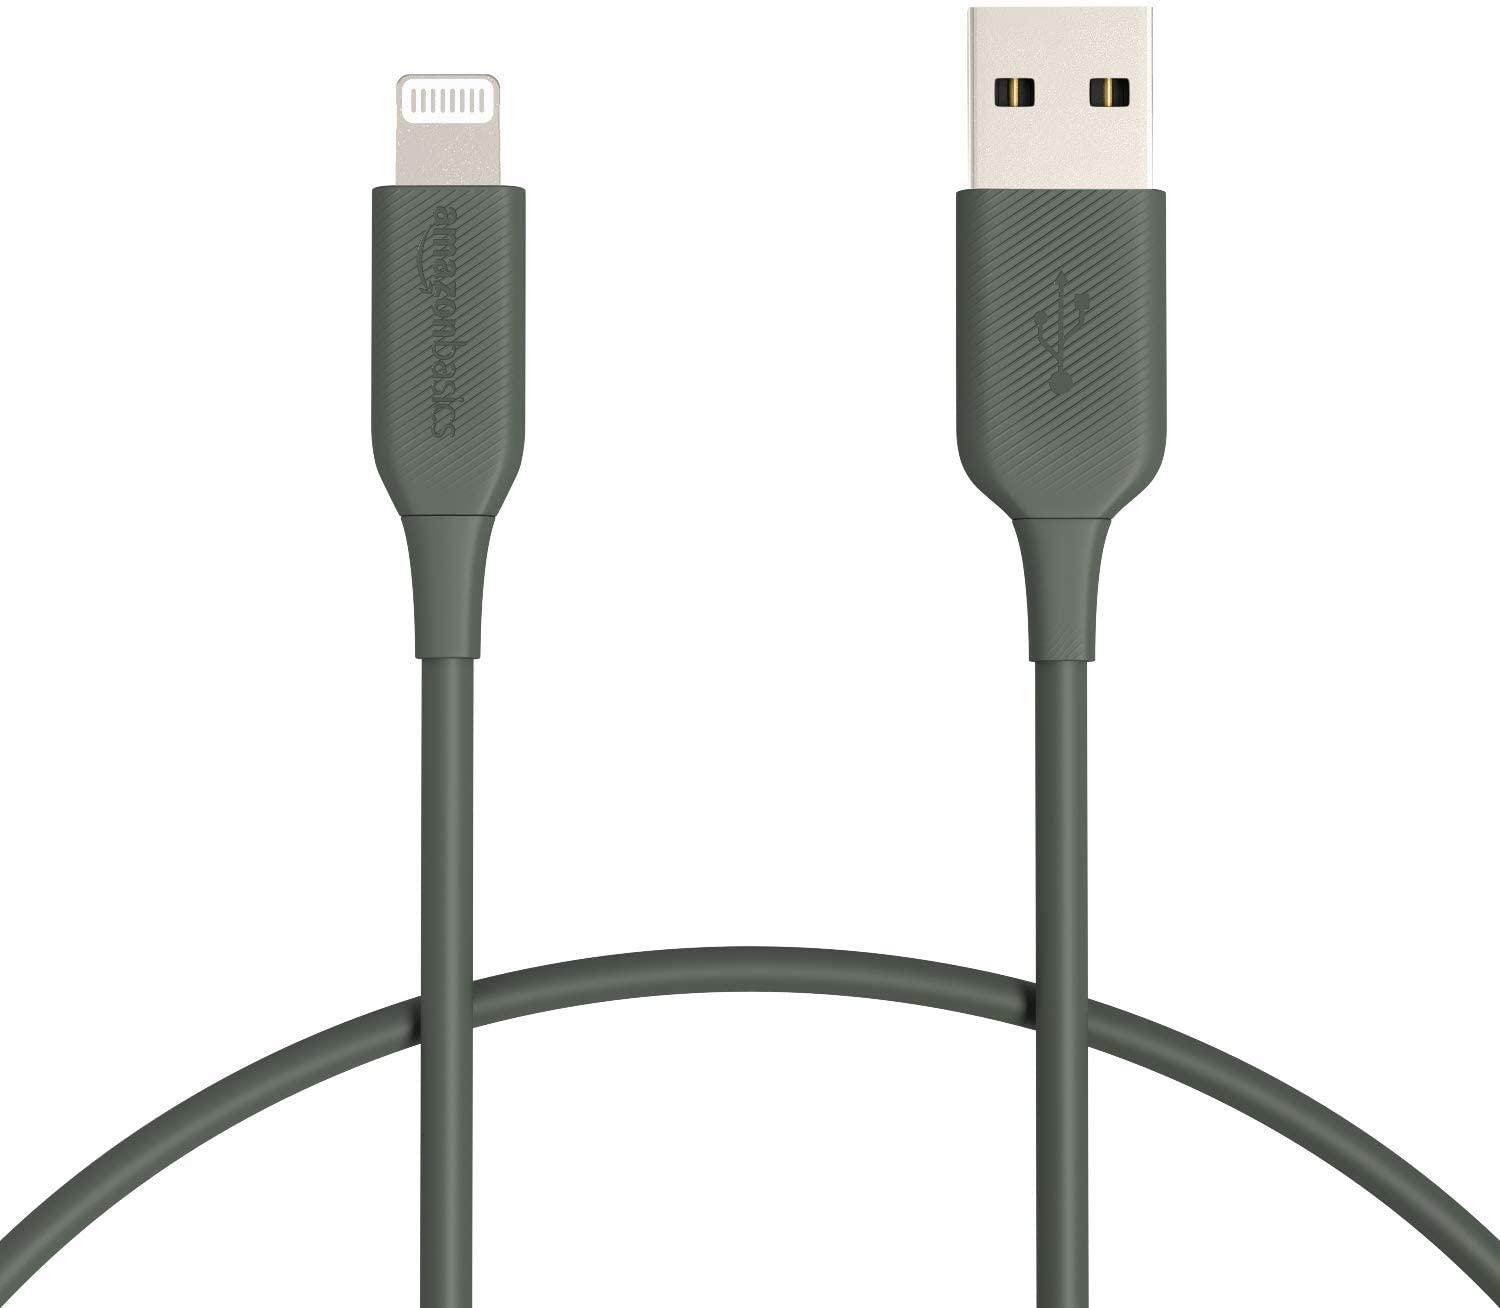 AmazonBasics Lightning to USB Cable - MFi Certified Apple iPhone Charger, Midnight Green, 1-Foot (Durability Rated 4,000 Bends)